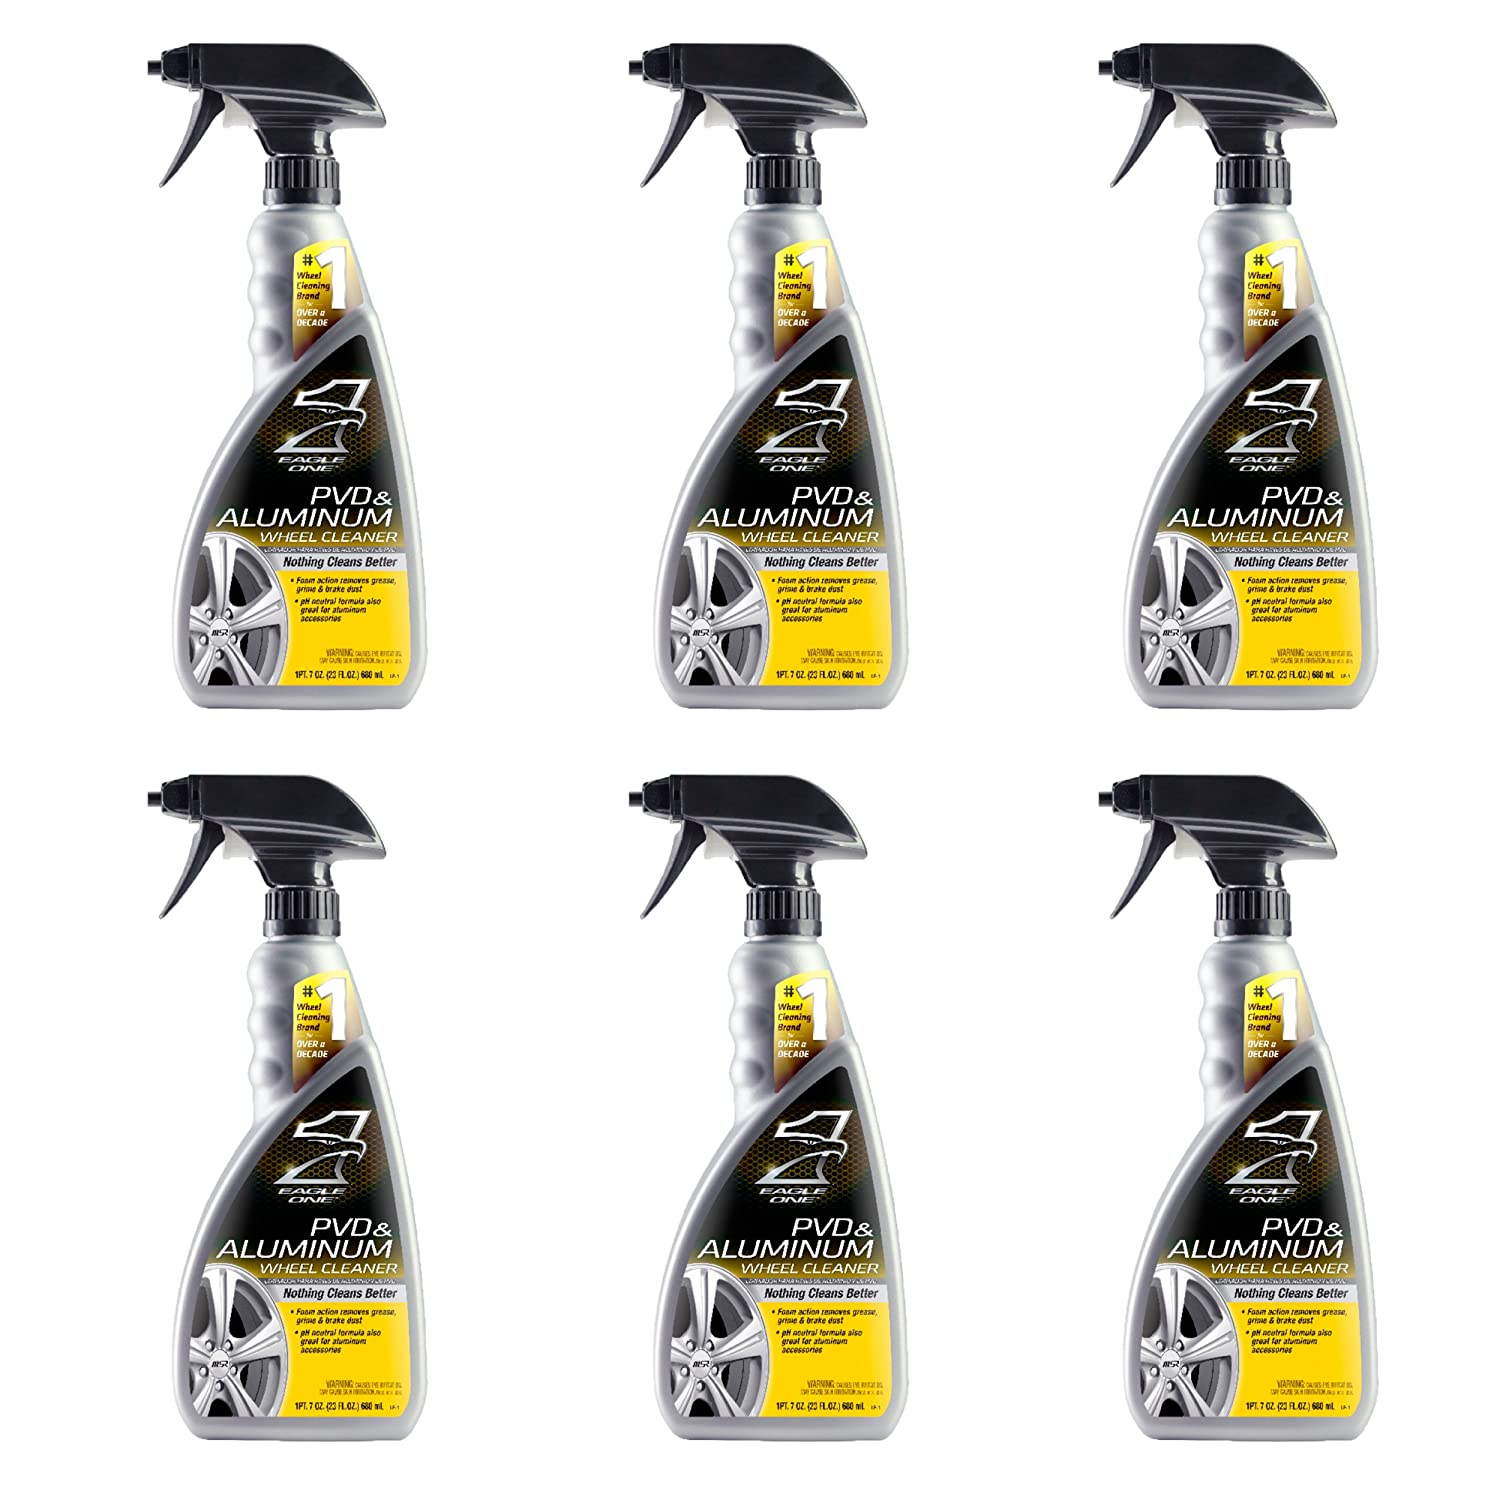 Amazon.com: Eagle One 824334-CASE PVD and Aluminum Wheel Cleaner, 23 fl. oz, 6 Pack: Automotive